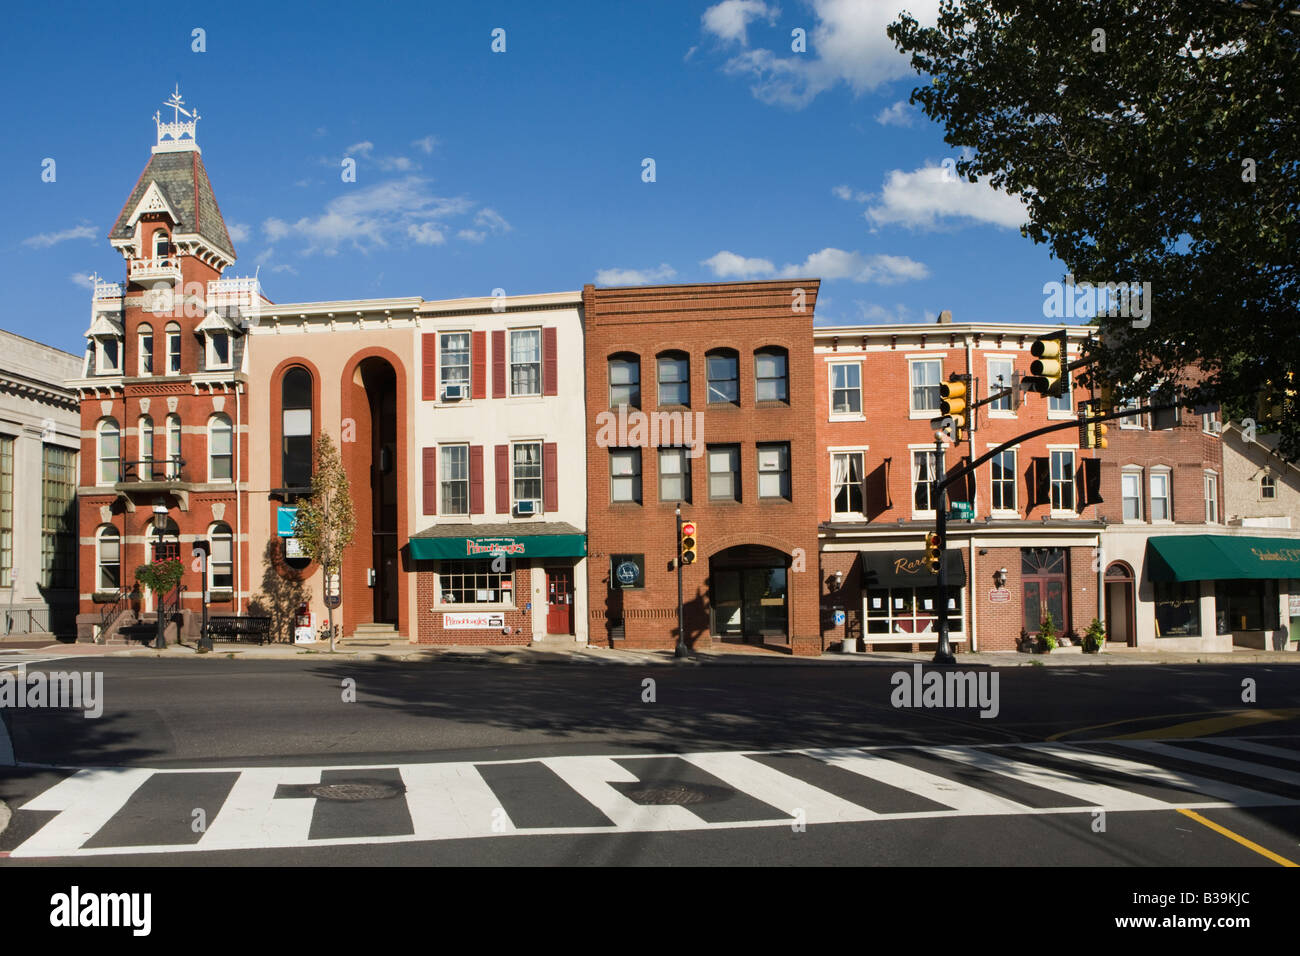 Business district of Doylestown Bucks County Pennsylvania - Stock Image